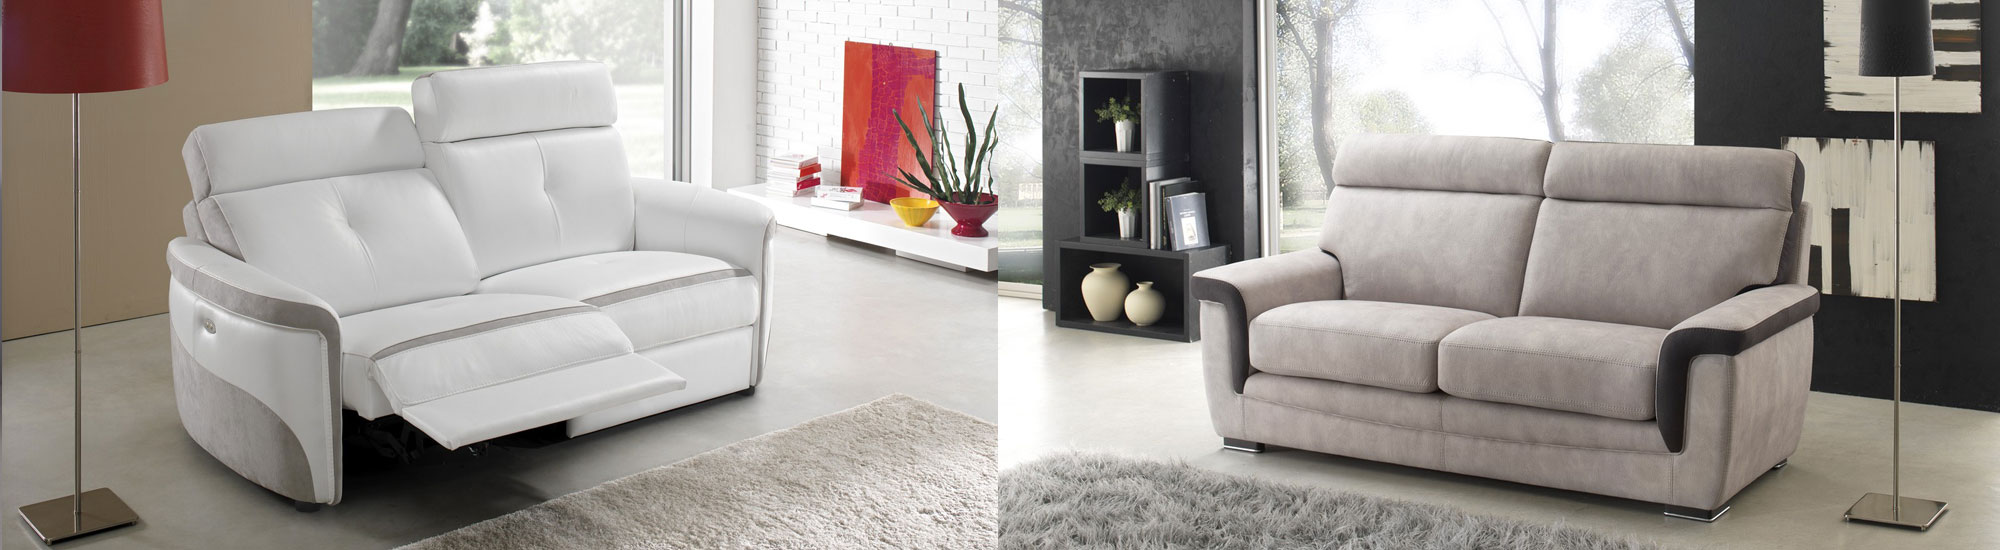 Canapes Et Fauteuils Relax Salon Canape Fauteuil Relaxation Rapido Stresless Himolla